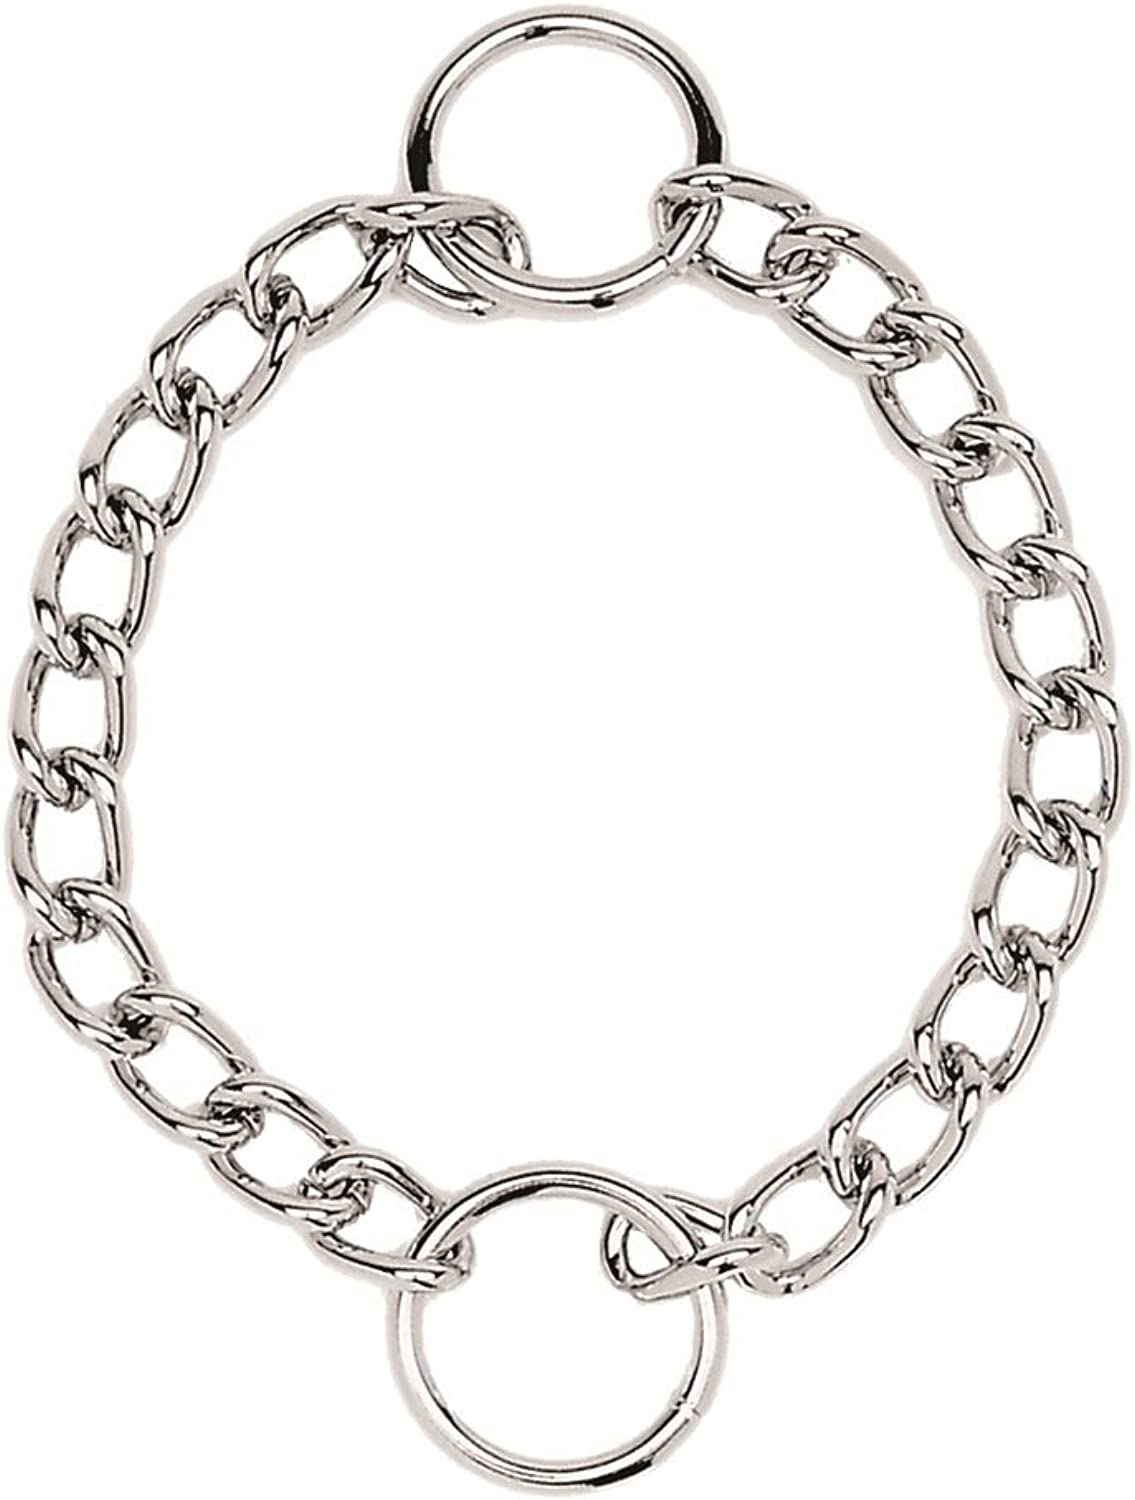 (2 Pack) Herm. Sprenger Throw Chain 343.4mm